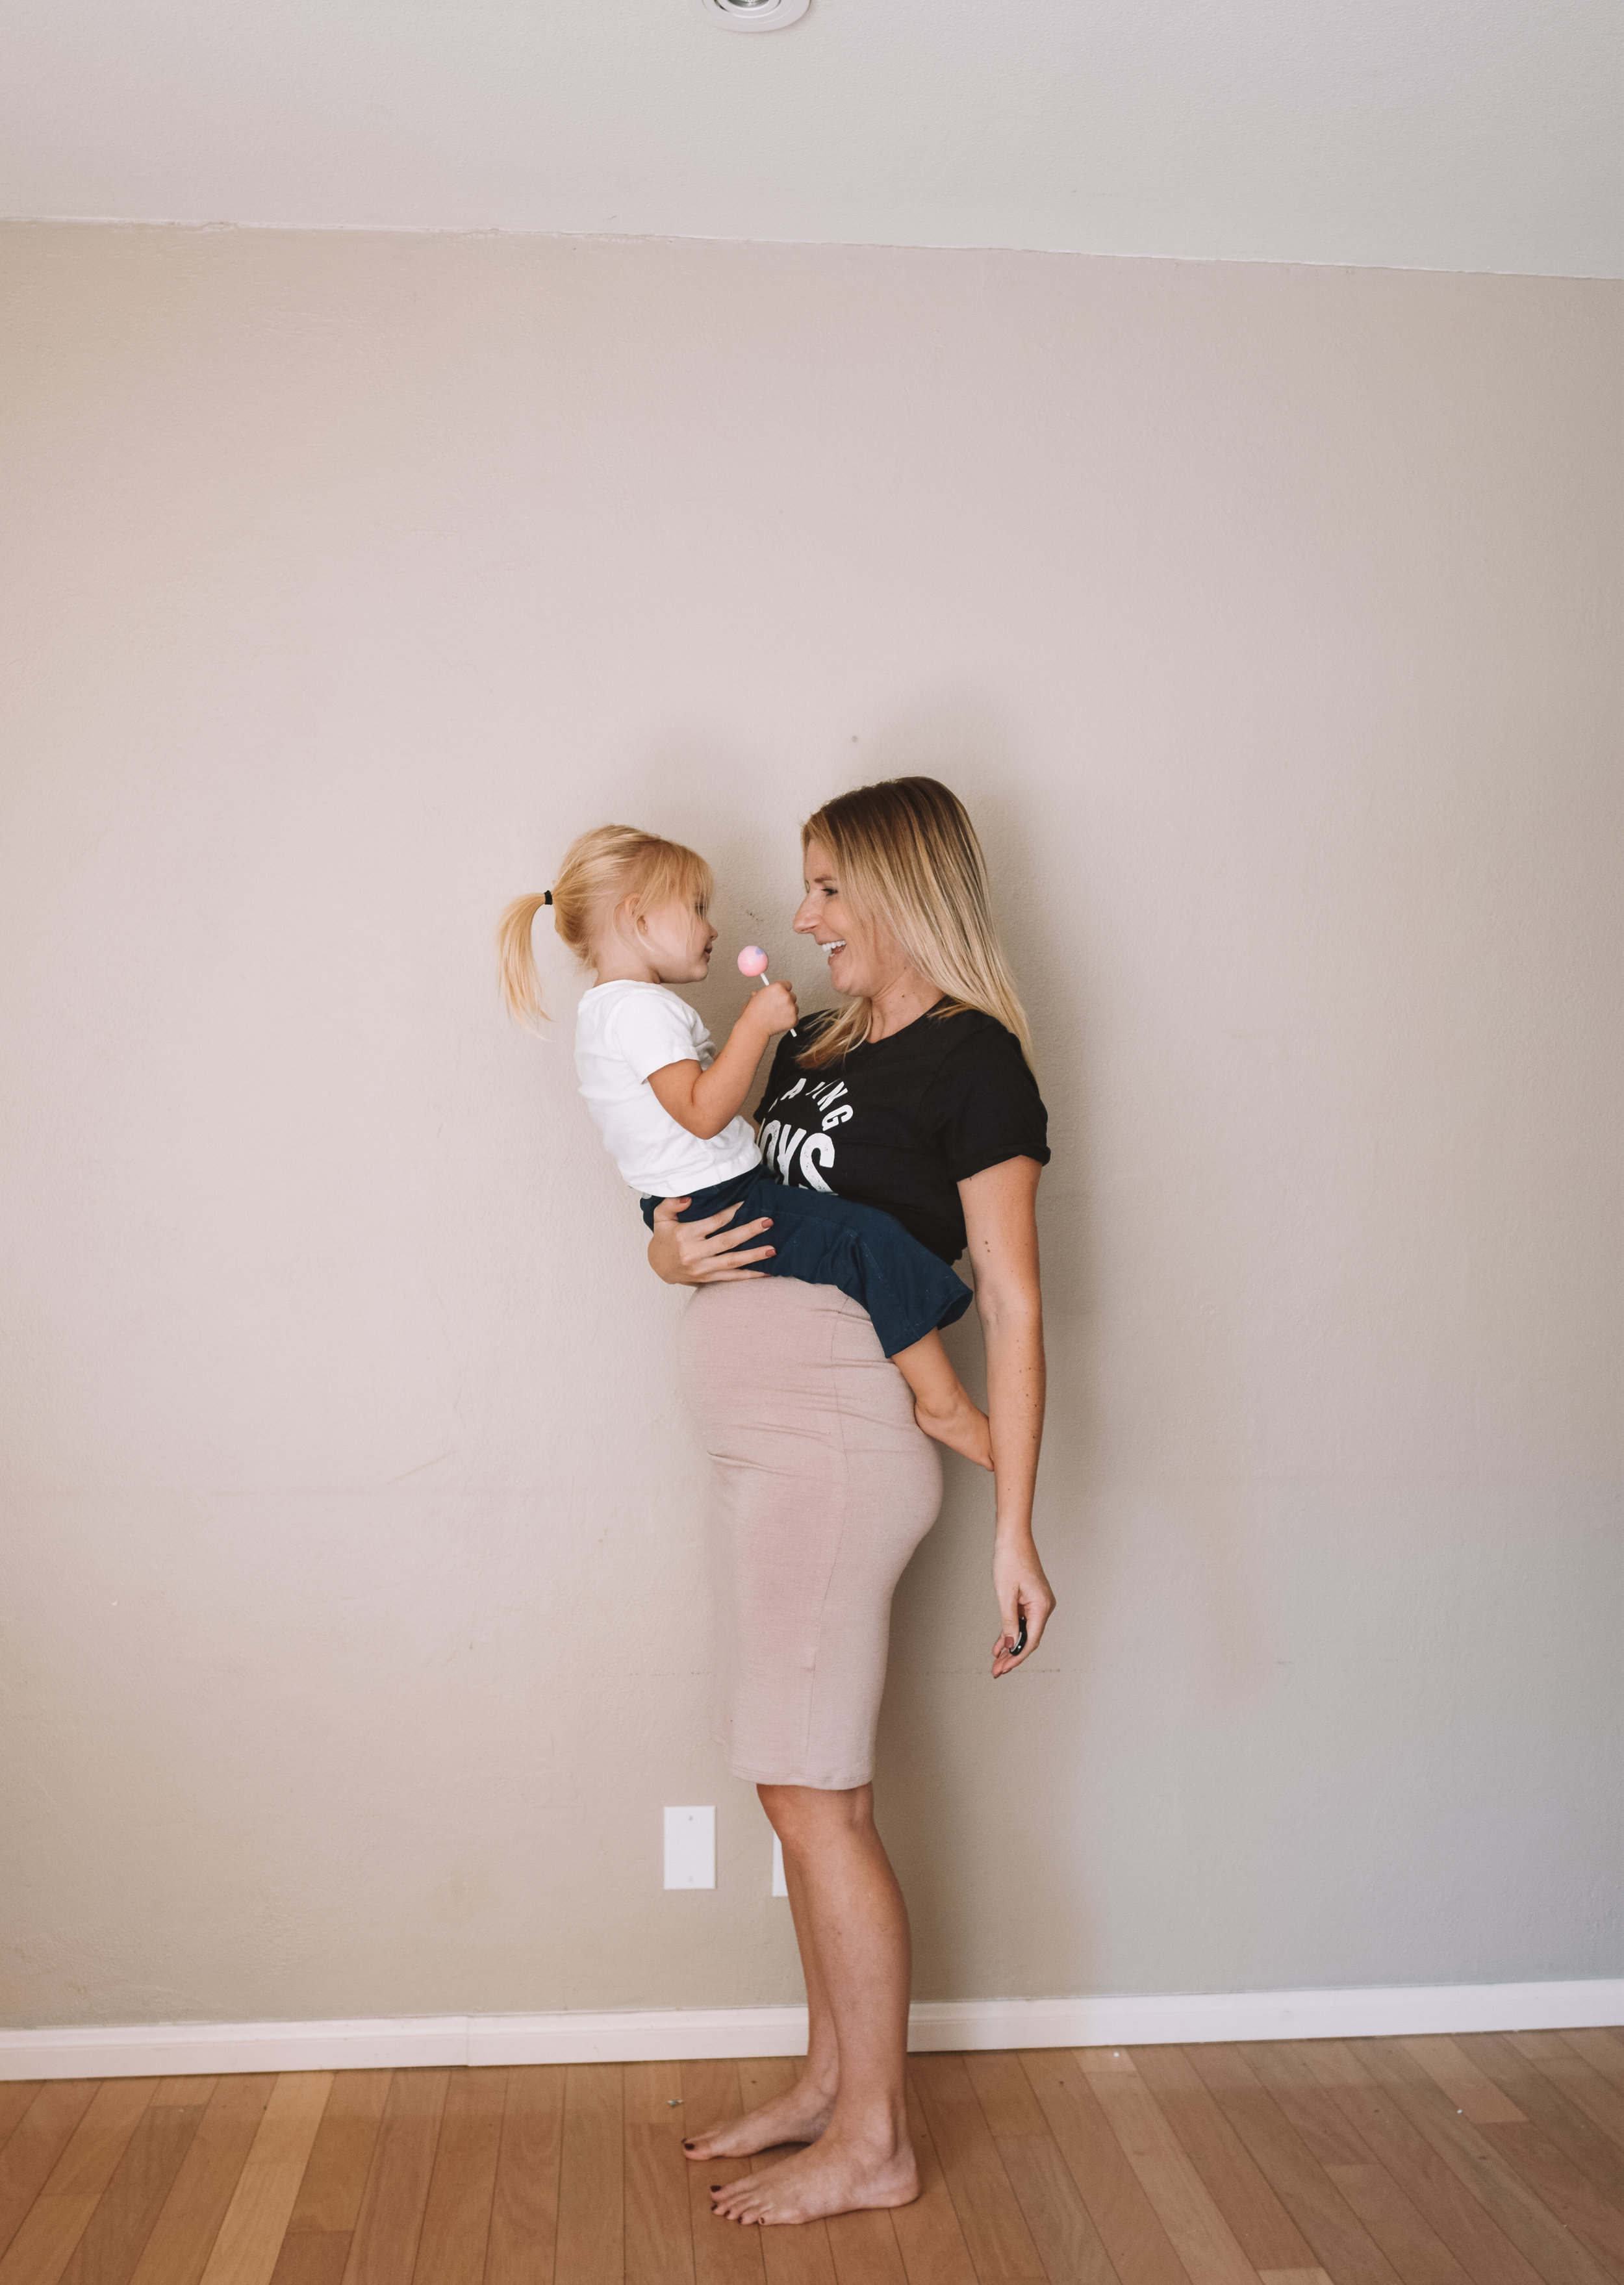 19 Weeks Pregnant Belly - Funny Pregnancy Shirts - The Overwhelmed Mommy Blogger